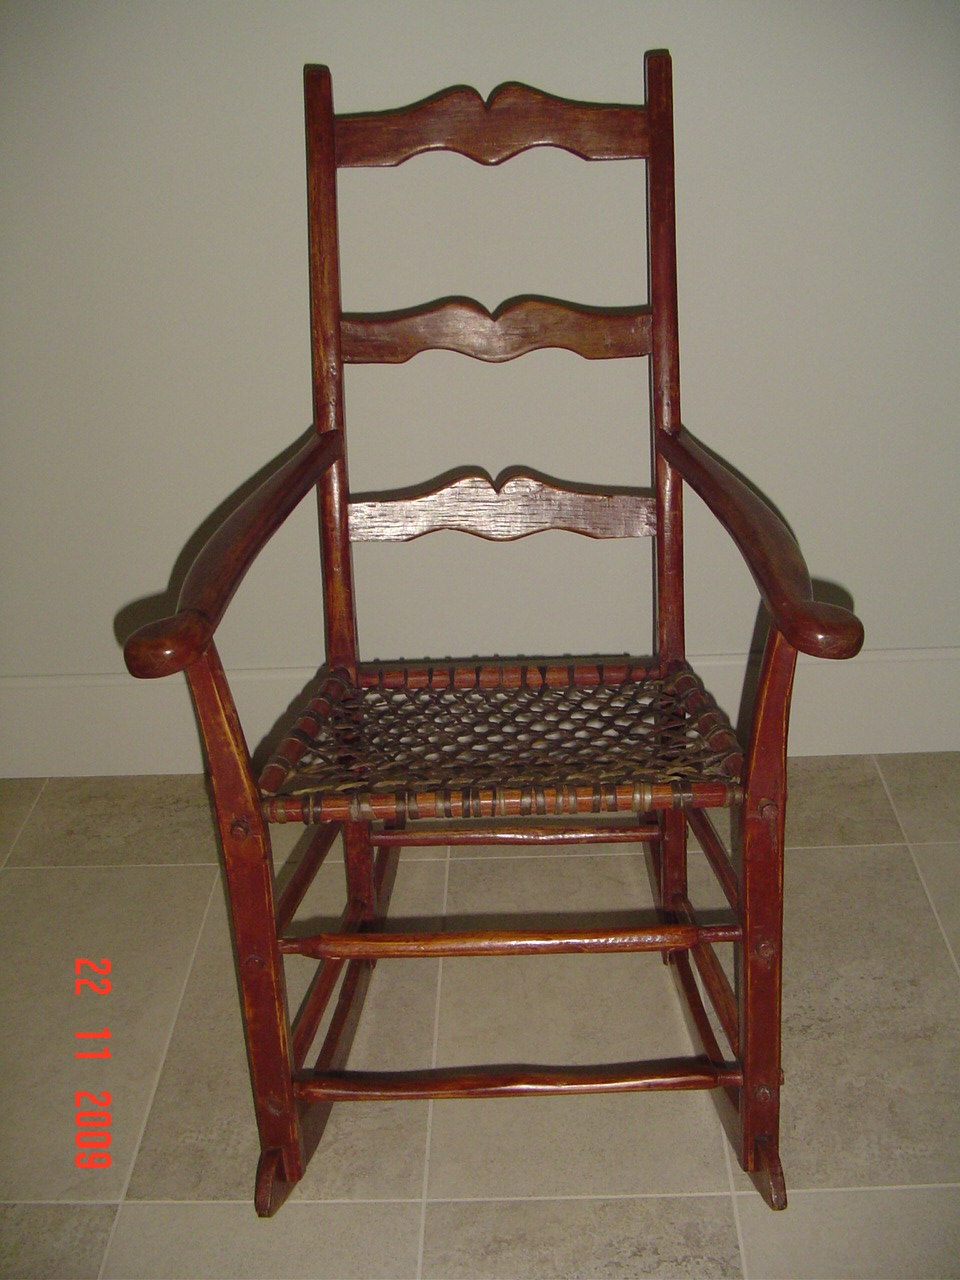 Primitive Rocking Chair Canadian Pine Wood Furniture For Sale Classifieds